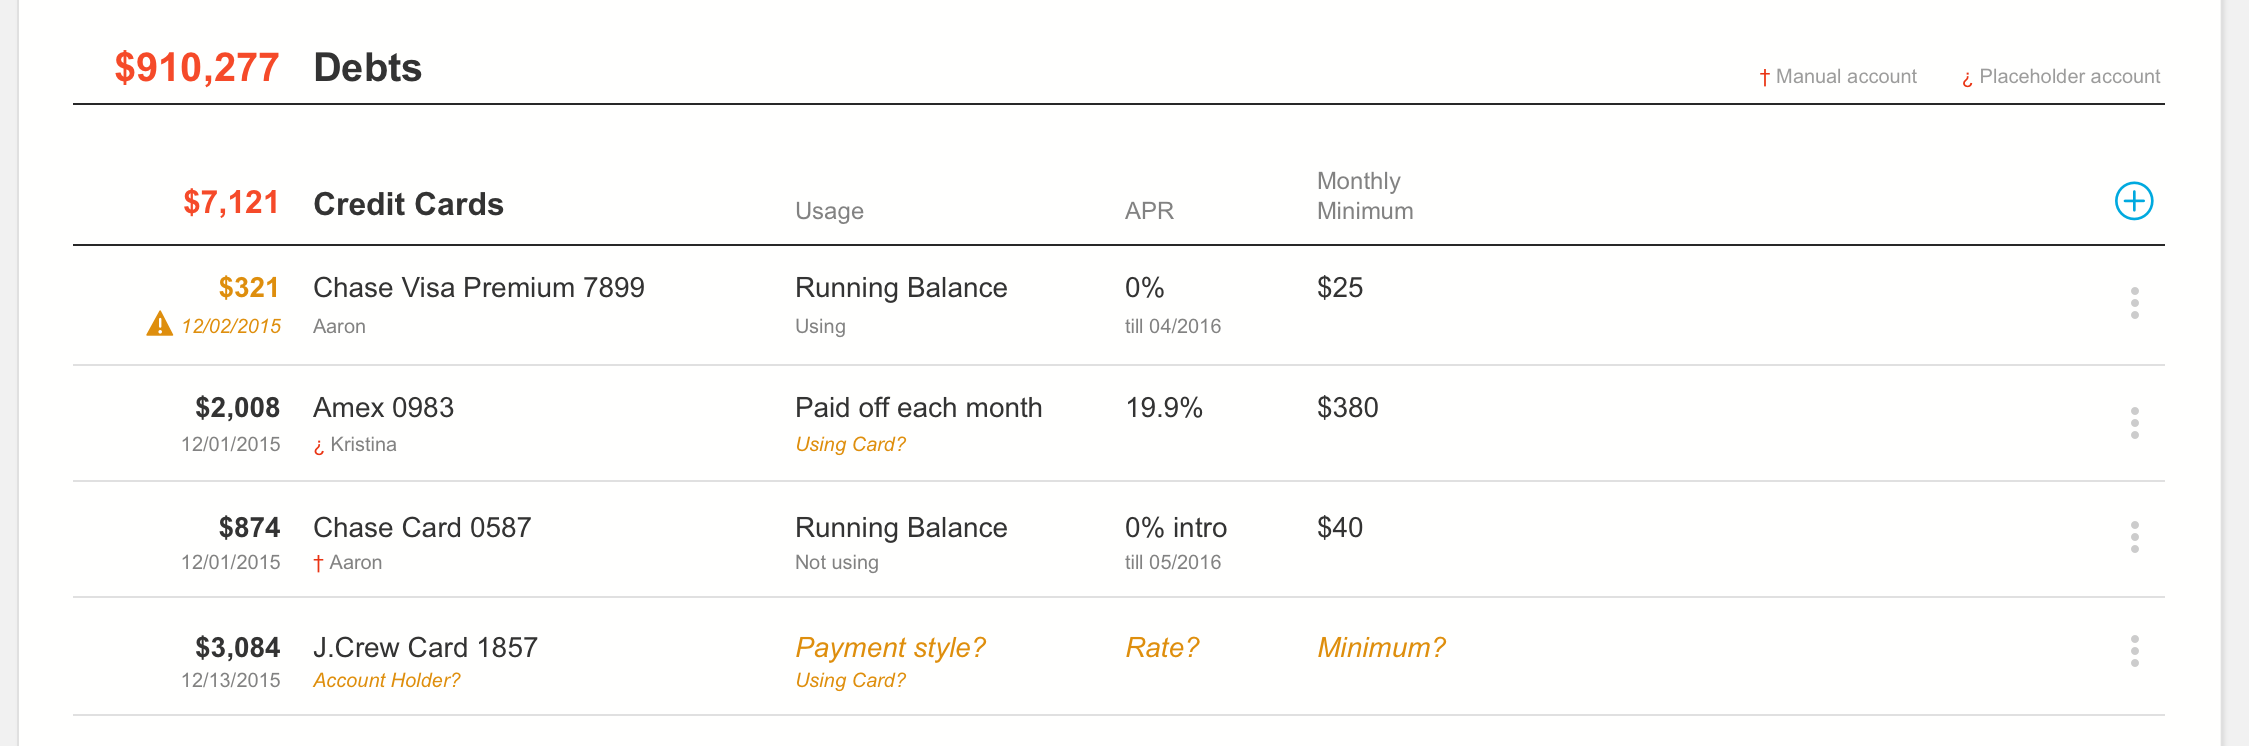 Primary + Secondary value pairings allowed for greater contextual information but still optimized for scanability. I also strived to keep column alignment — asset contributions and debt monthly costs are aligned to help the planner know how much money is being spent.